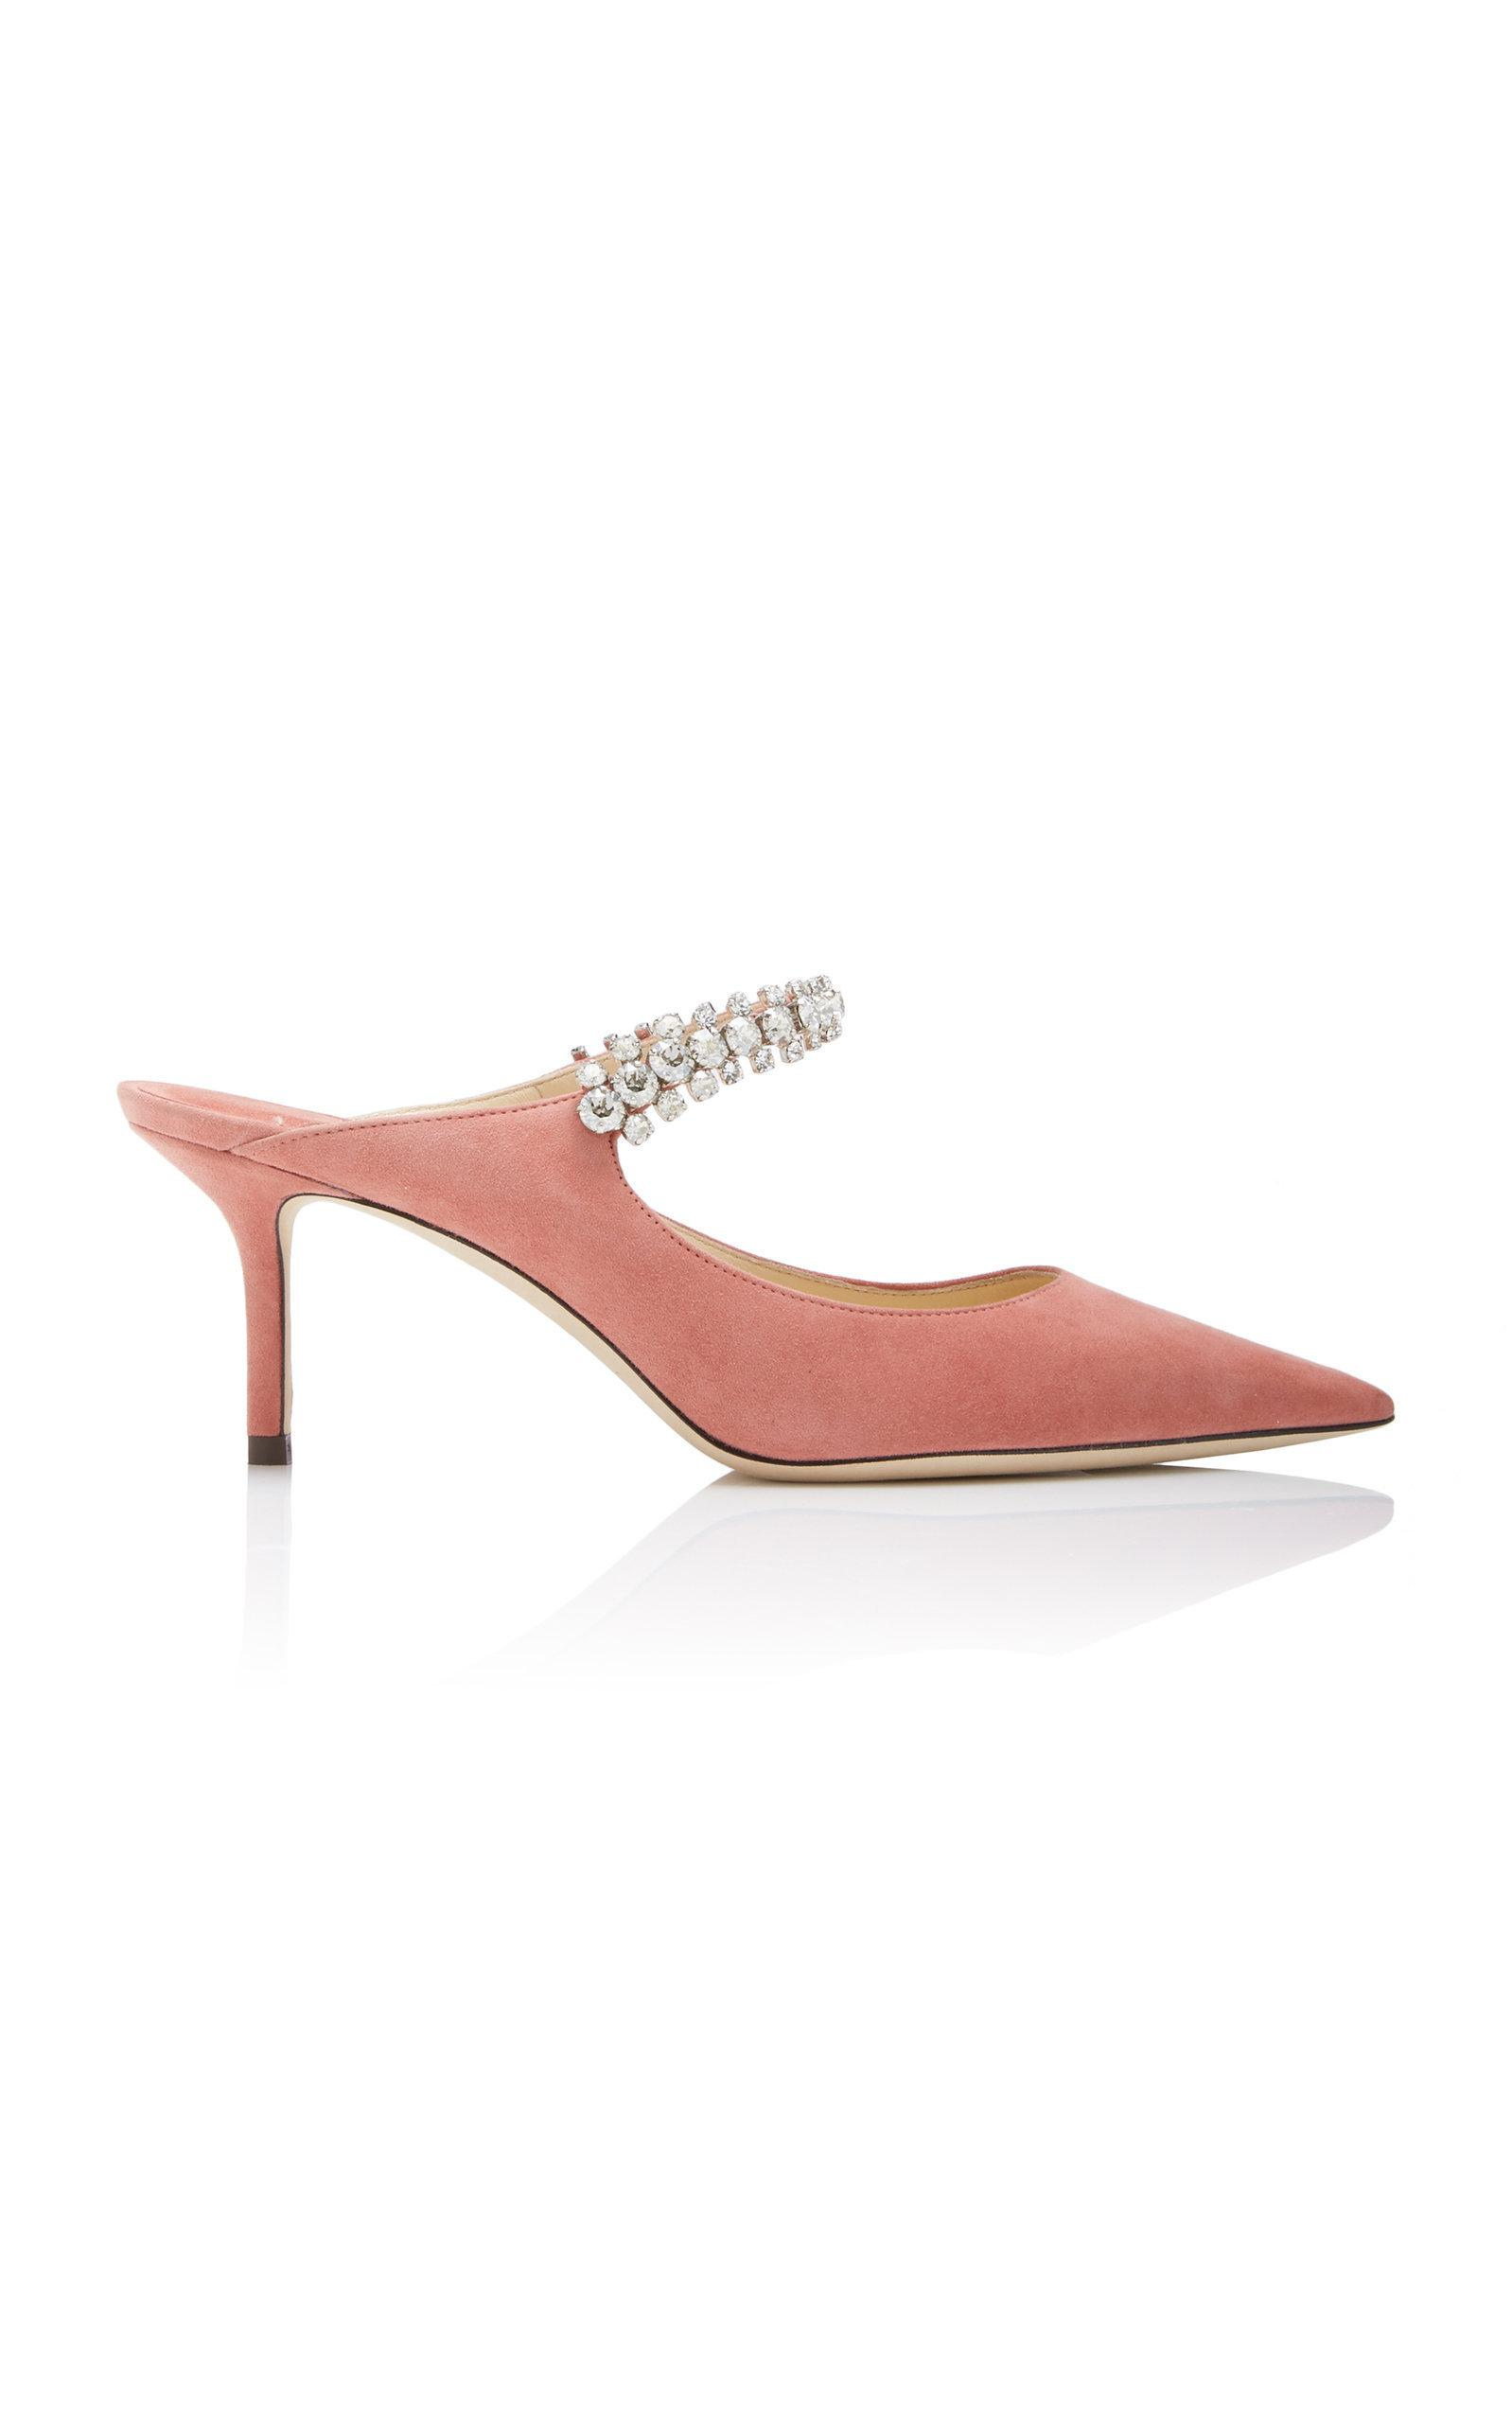 9fc53a70b Jimmy Choo Bing 65 Rosewood Suede Mules With Crystal Strap In Pink ...